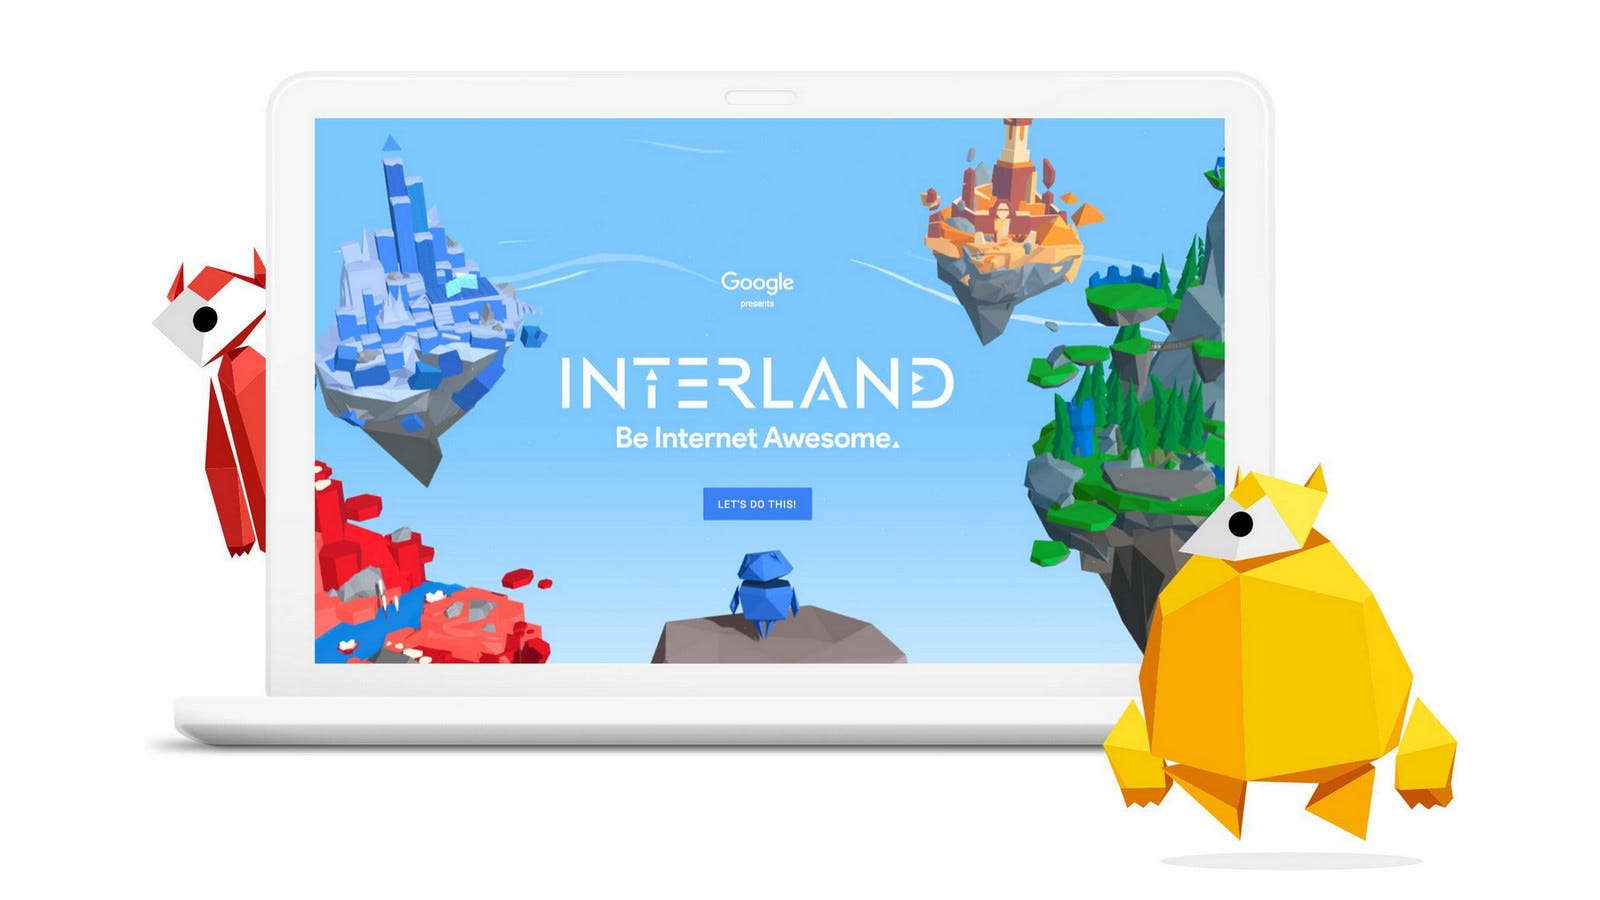 Laptop with Interland, the Google internet safety game, displayed on the screen along with the mascots